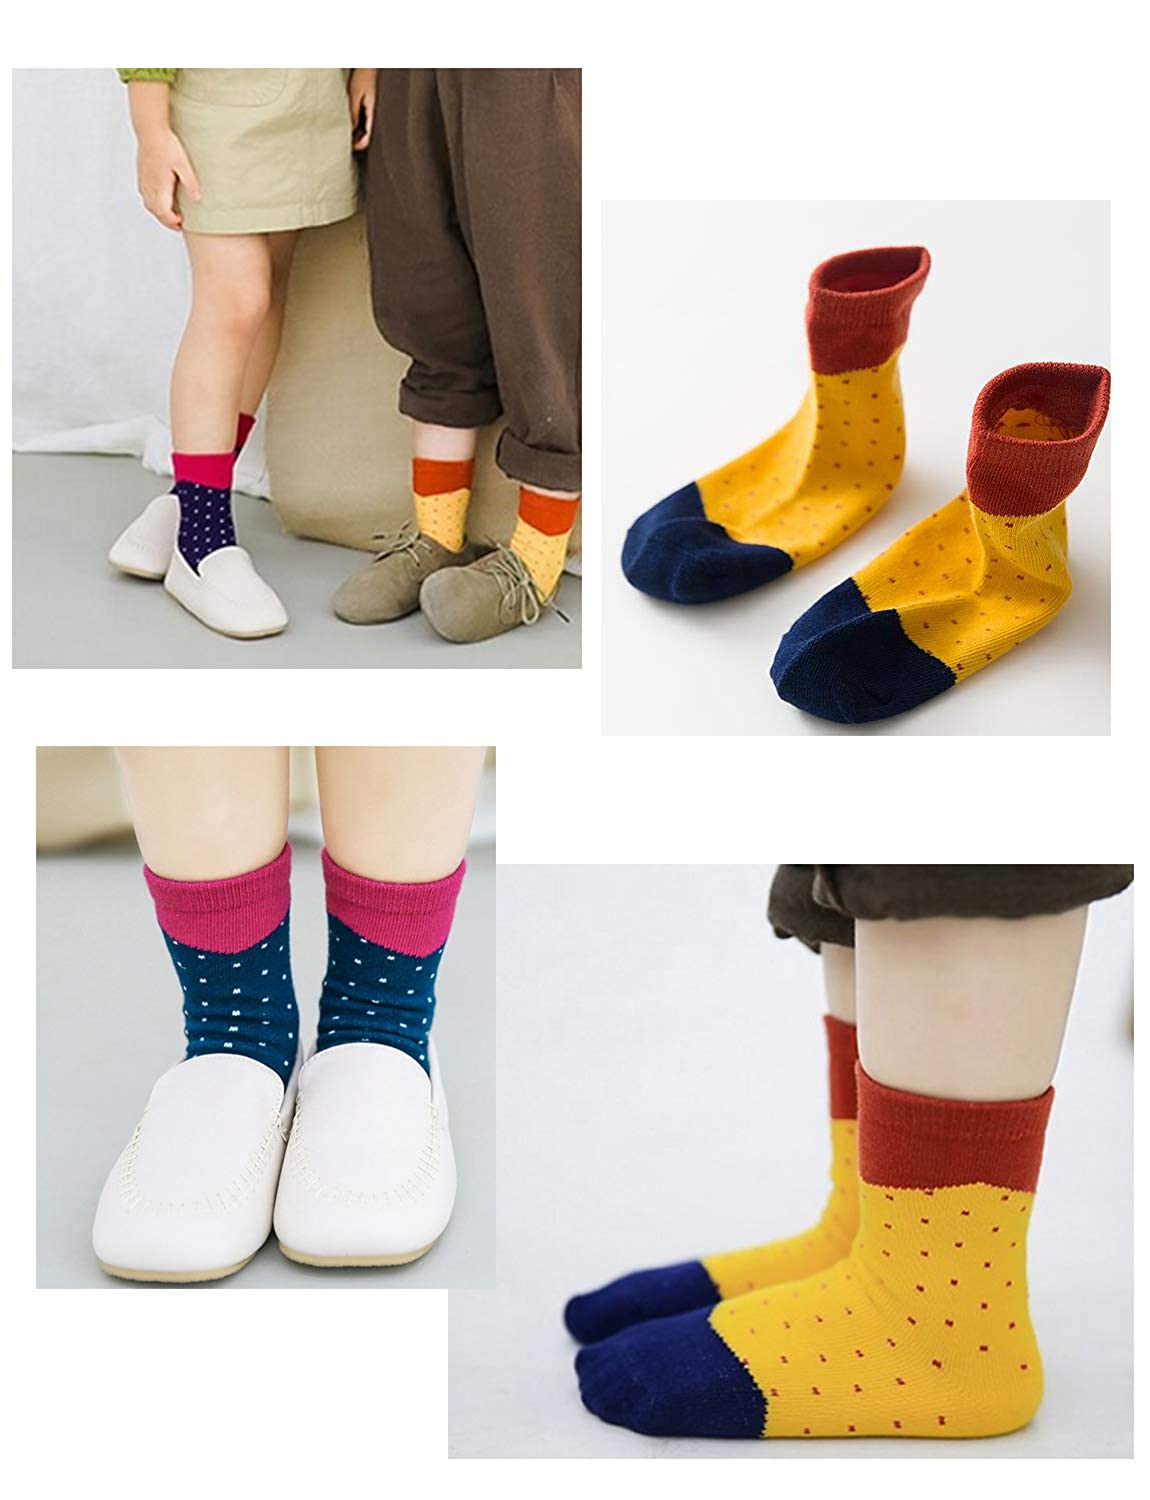 Kids 5 pack 1-10years Fashion Crew Seamless Socks for girls,Toddlers